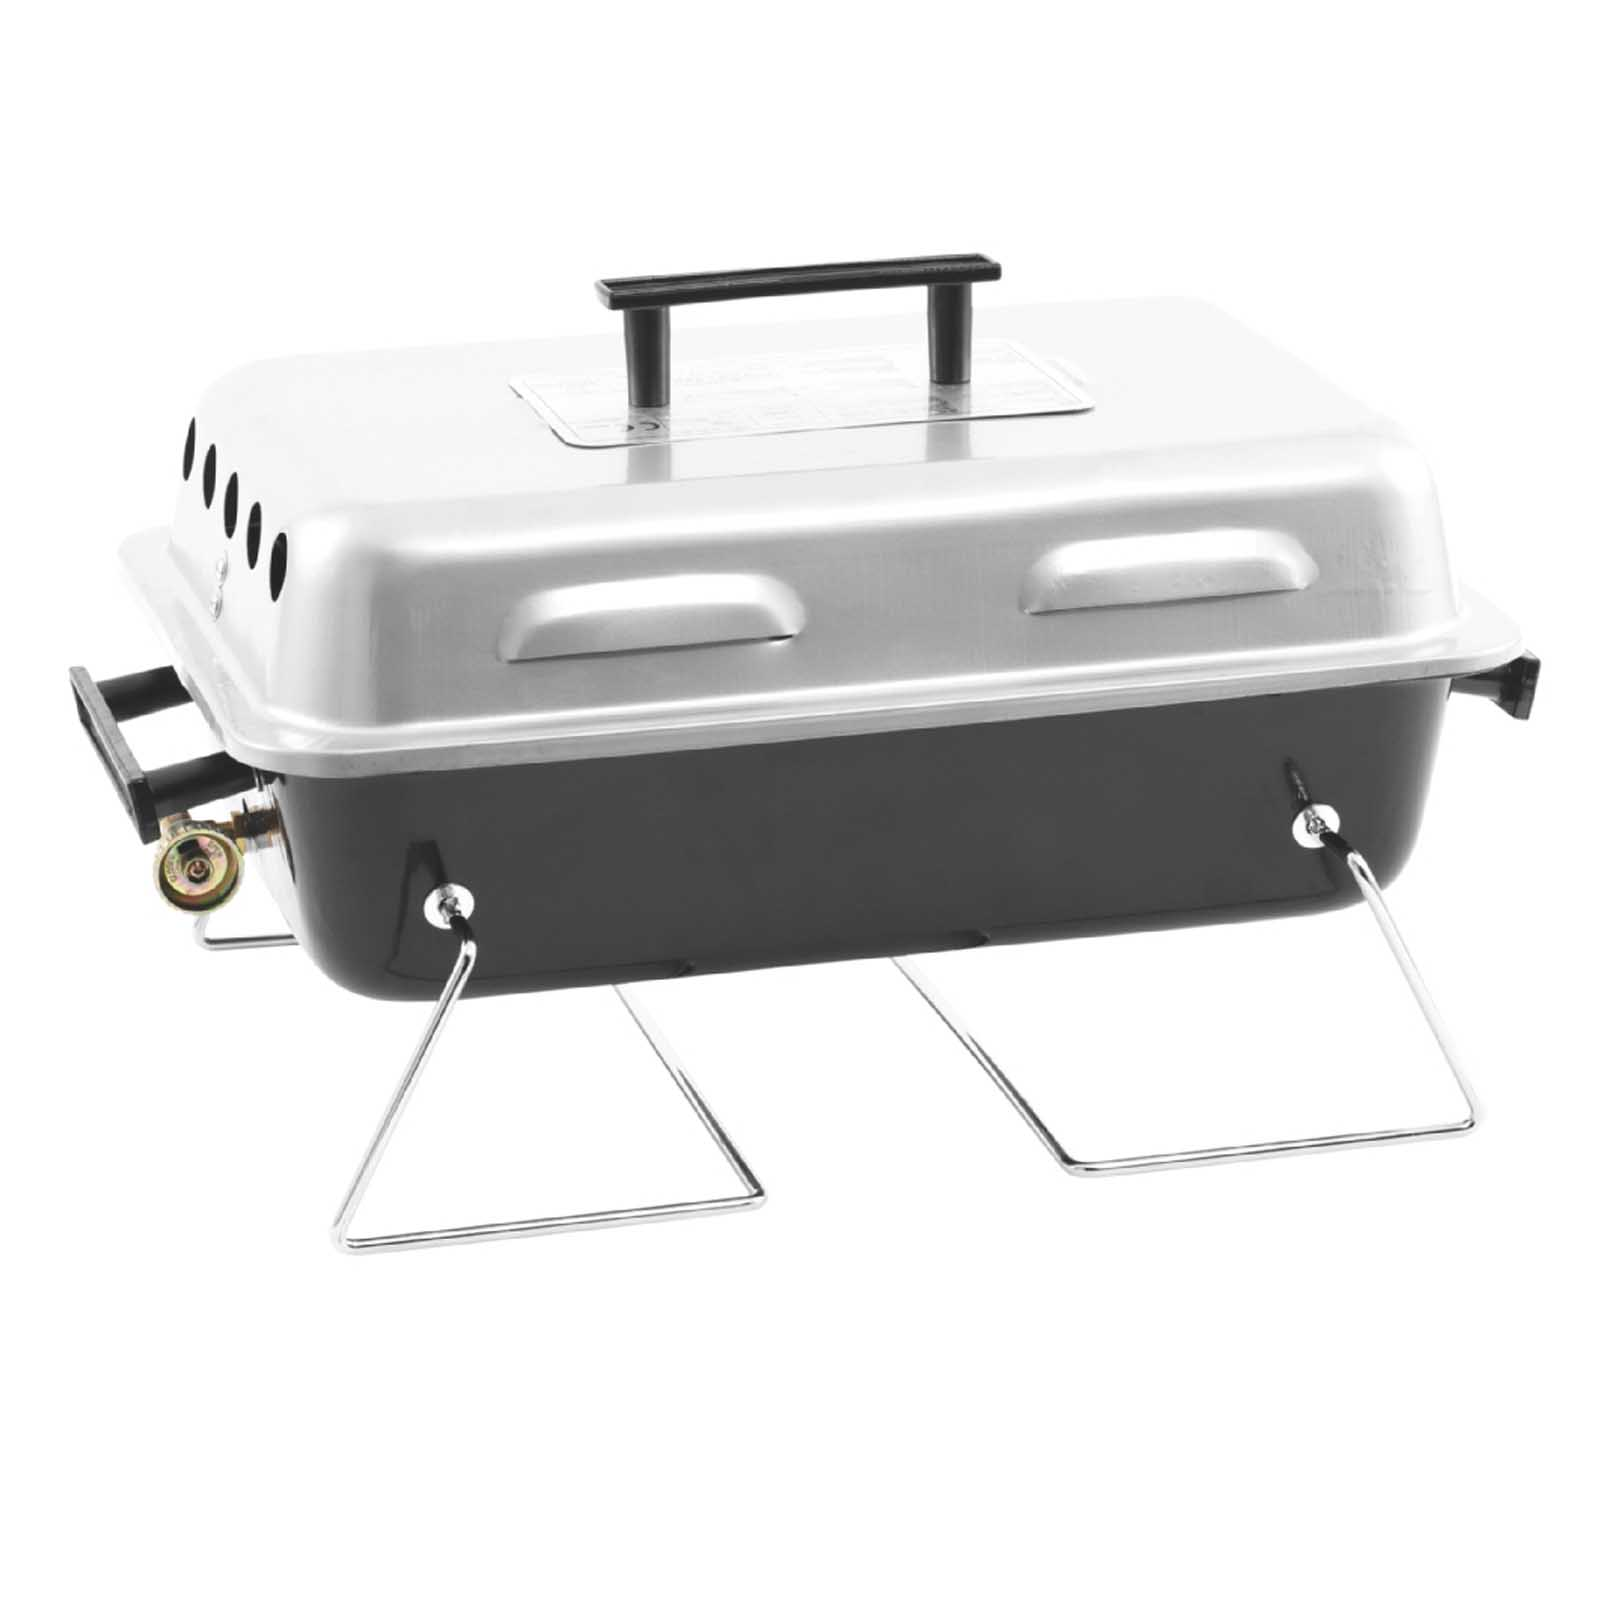 camping gasgrill mit lavasteinen outwell asado bbq outdoor picknick gas grill ebay. Black Bedroom Furniture Sets. Home Design Ideas